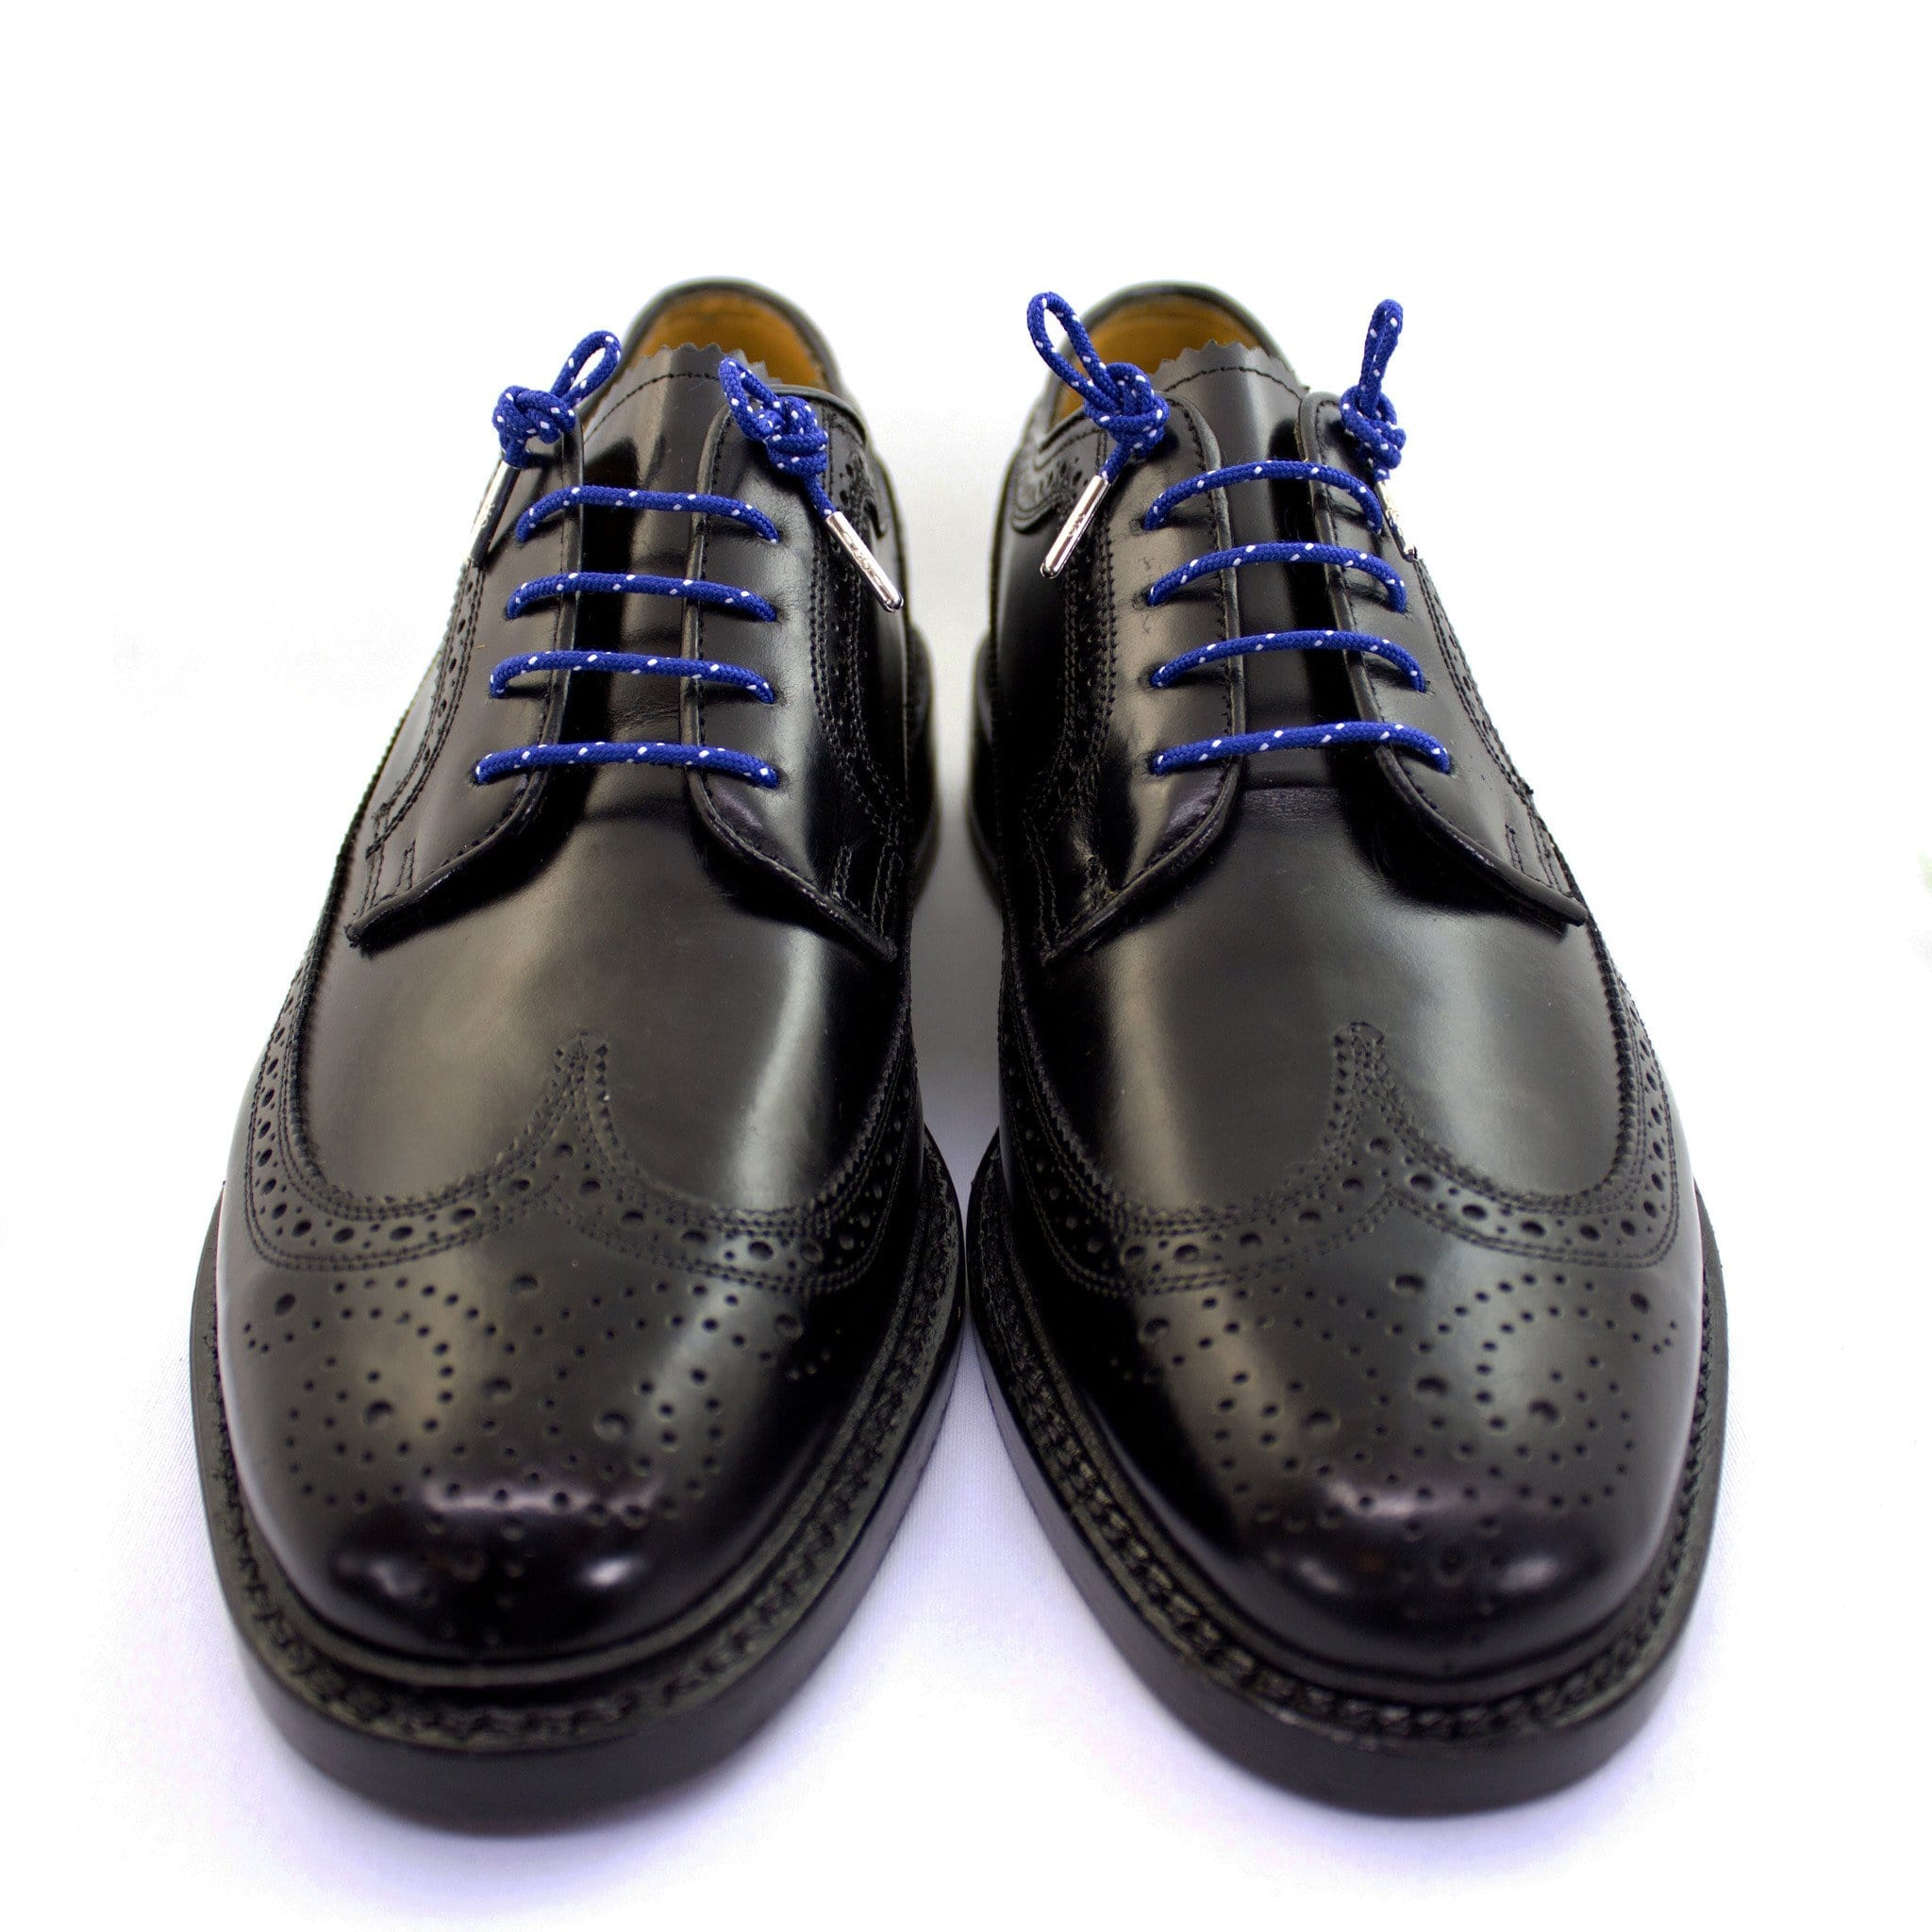 "Royal blue and white dots laces for dress shoes, Length: 32""/81cm-Stolen Riches"